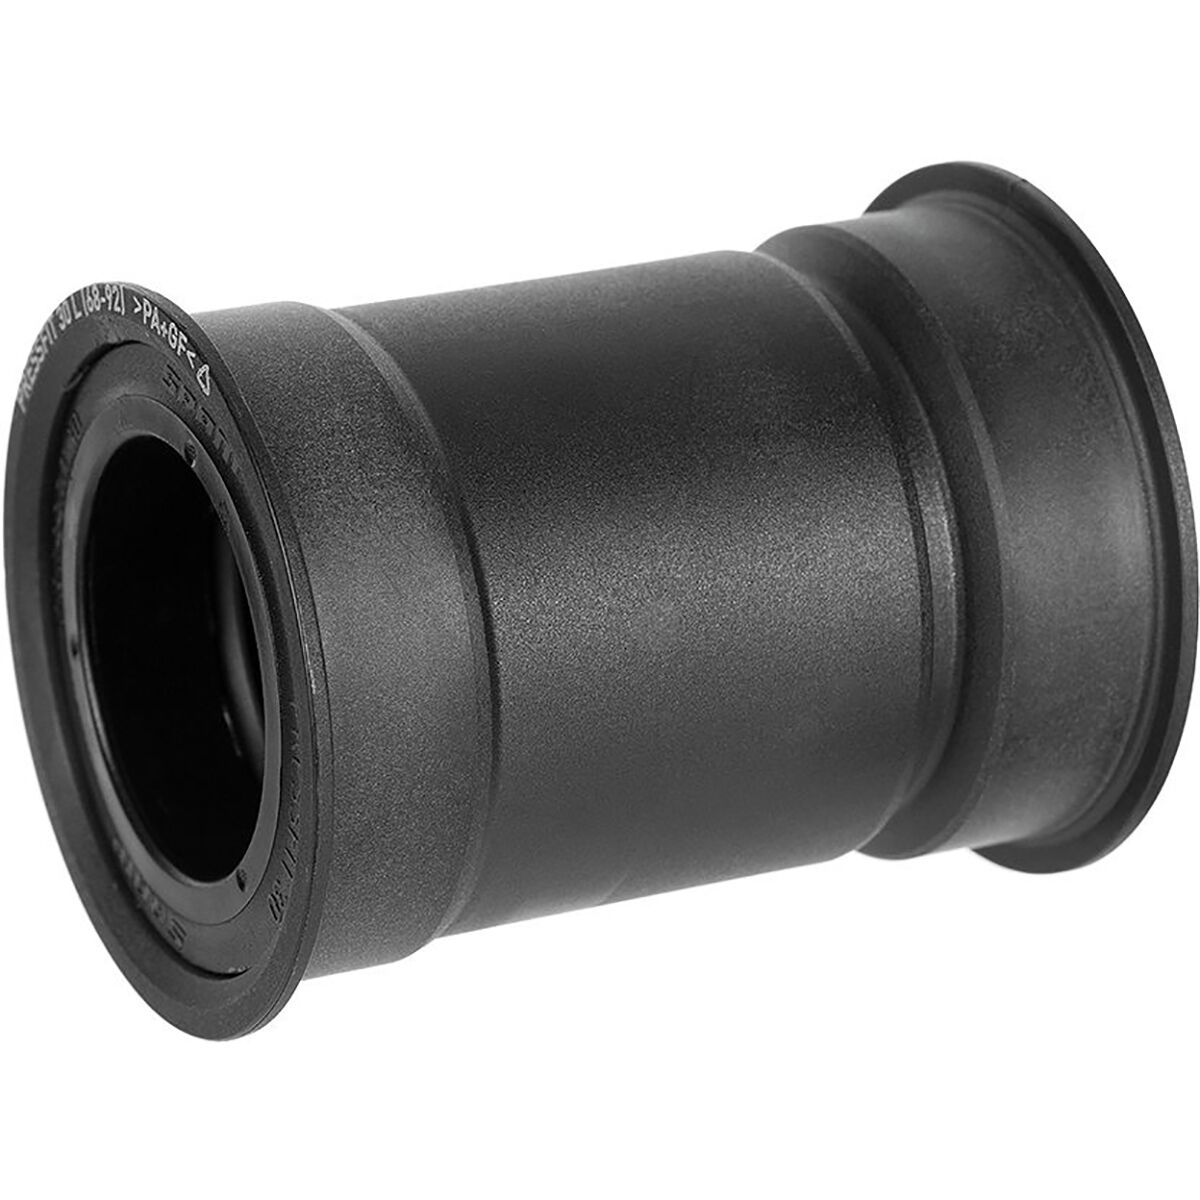 Sram Pf30 Ceramic Bottom Bracket Competitive Cyclist